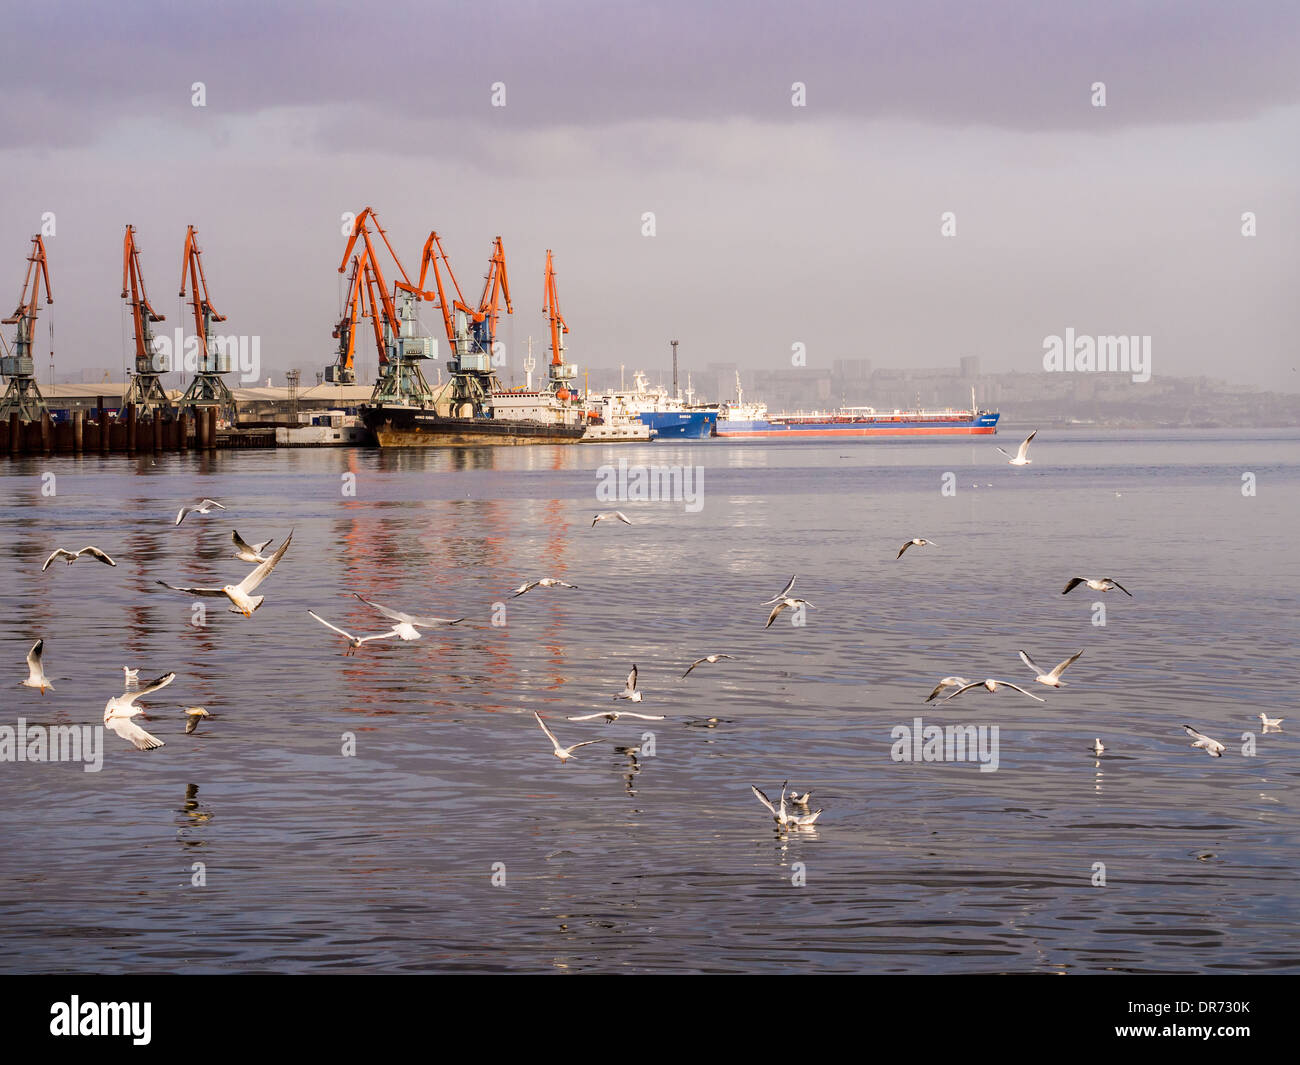 Baku International Marine Trade Port at sunset. - Stock Image